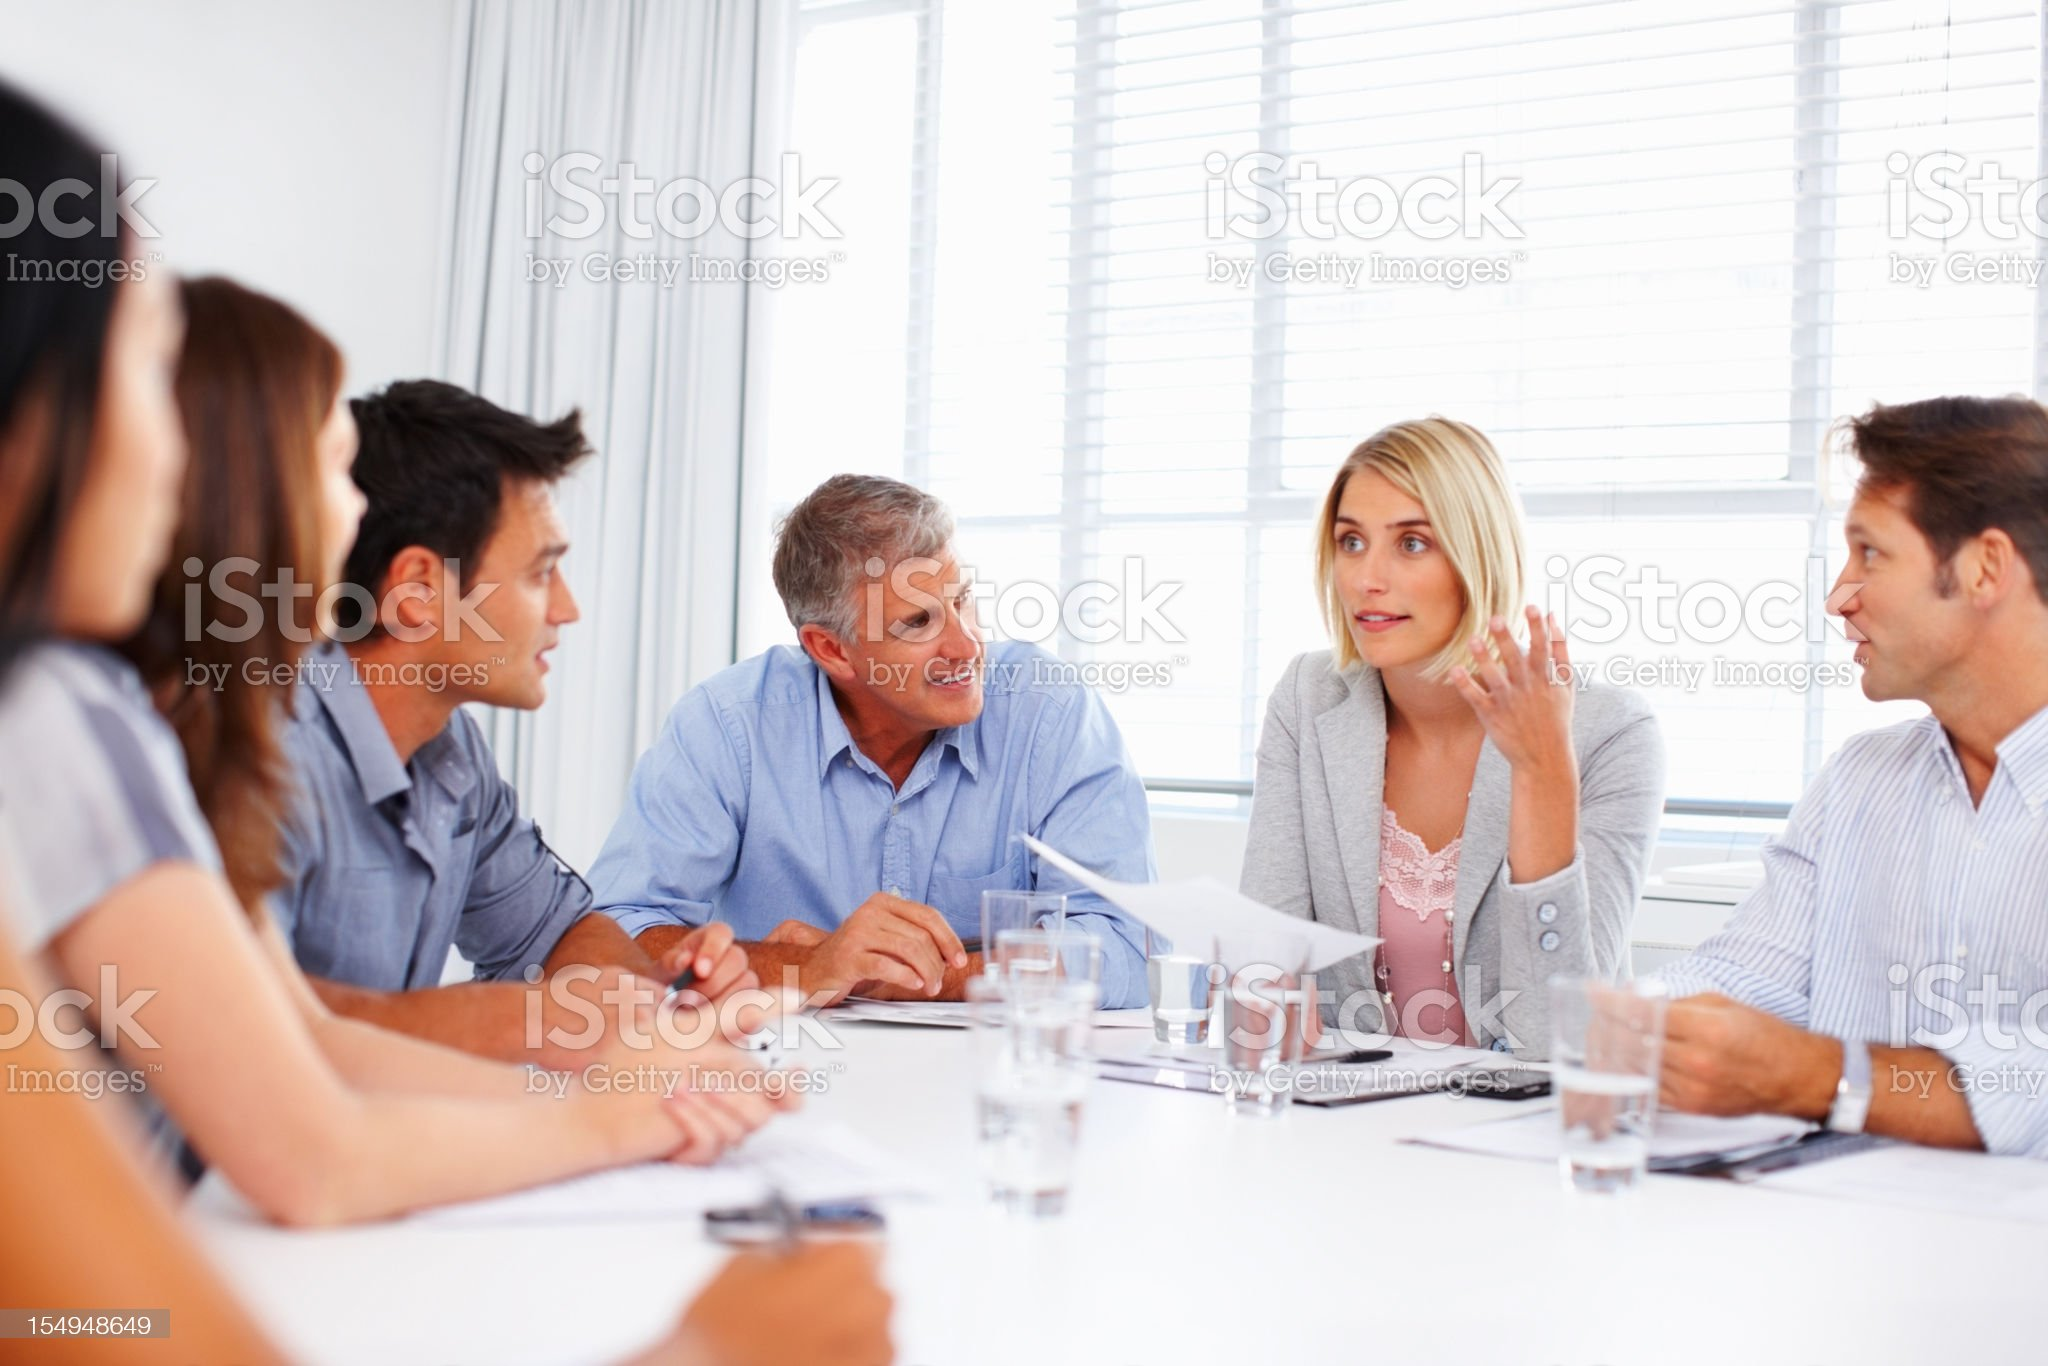 Female executive making a point in meeting royalty-free stock photo